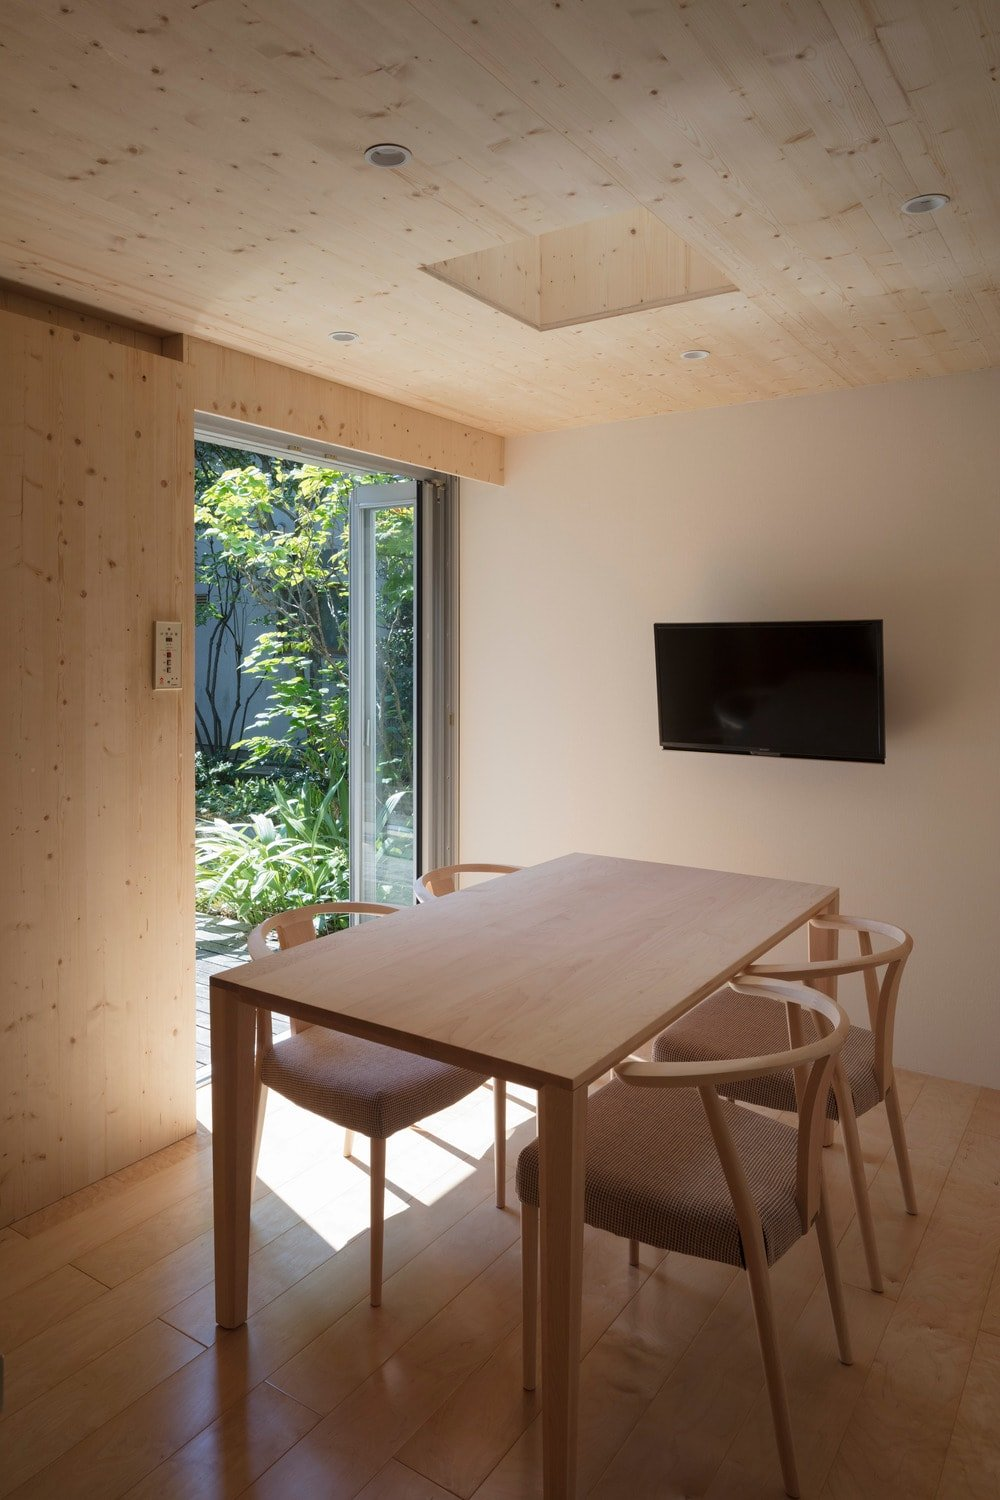 This is the informal dining area at the edge of the kitchen. It has its own sliding door that opens to the garden of the back and a wall-mounted TV.